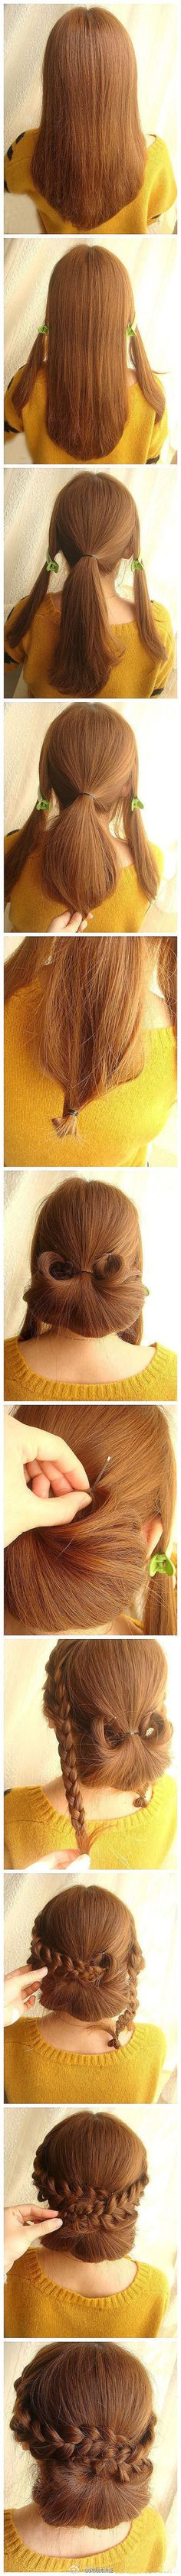 doubt I could do this with my own hair, but looks pretty cute and easy.